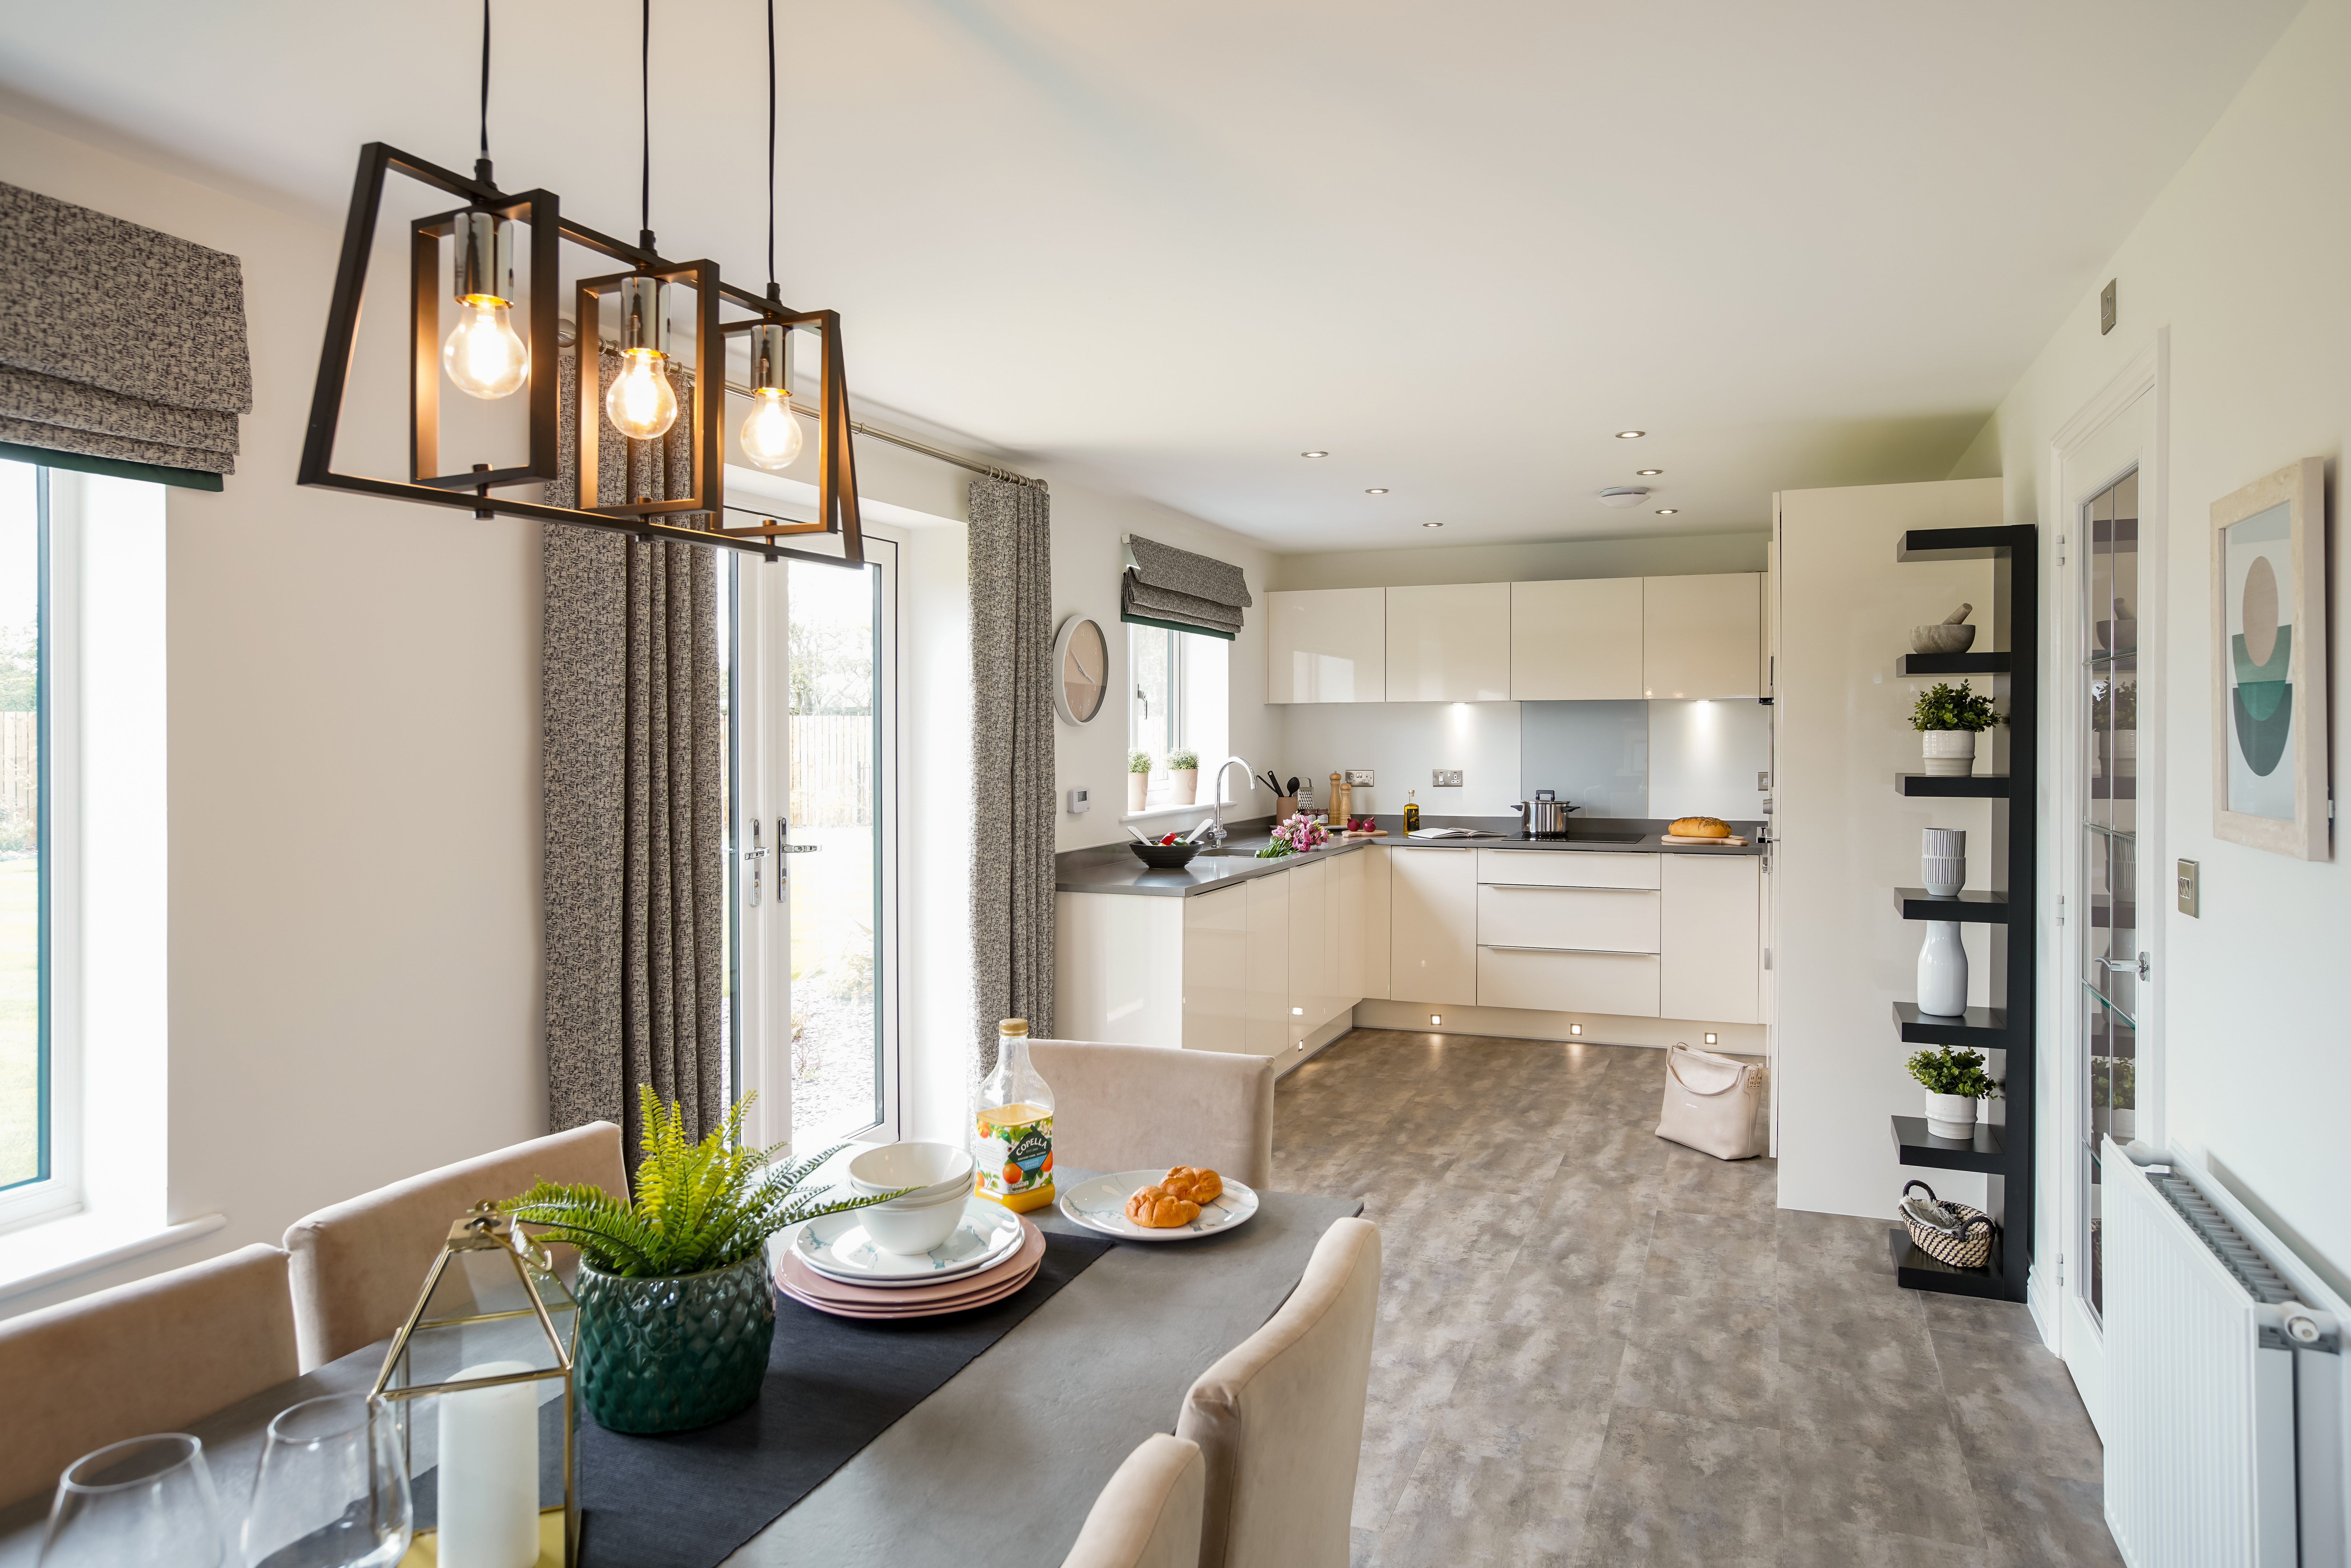 TW_NE_Eden Gardens_Downham_Kitchen 3